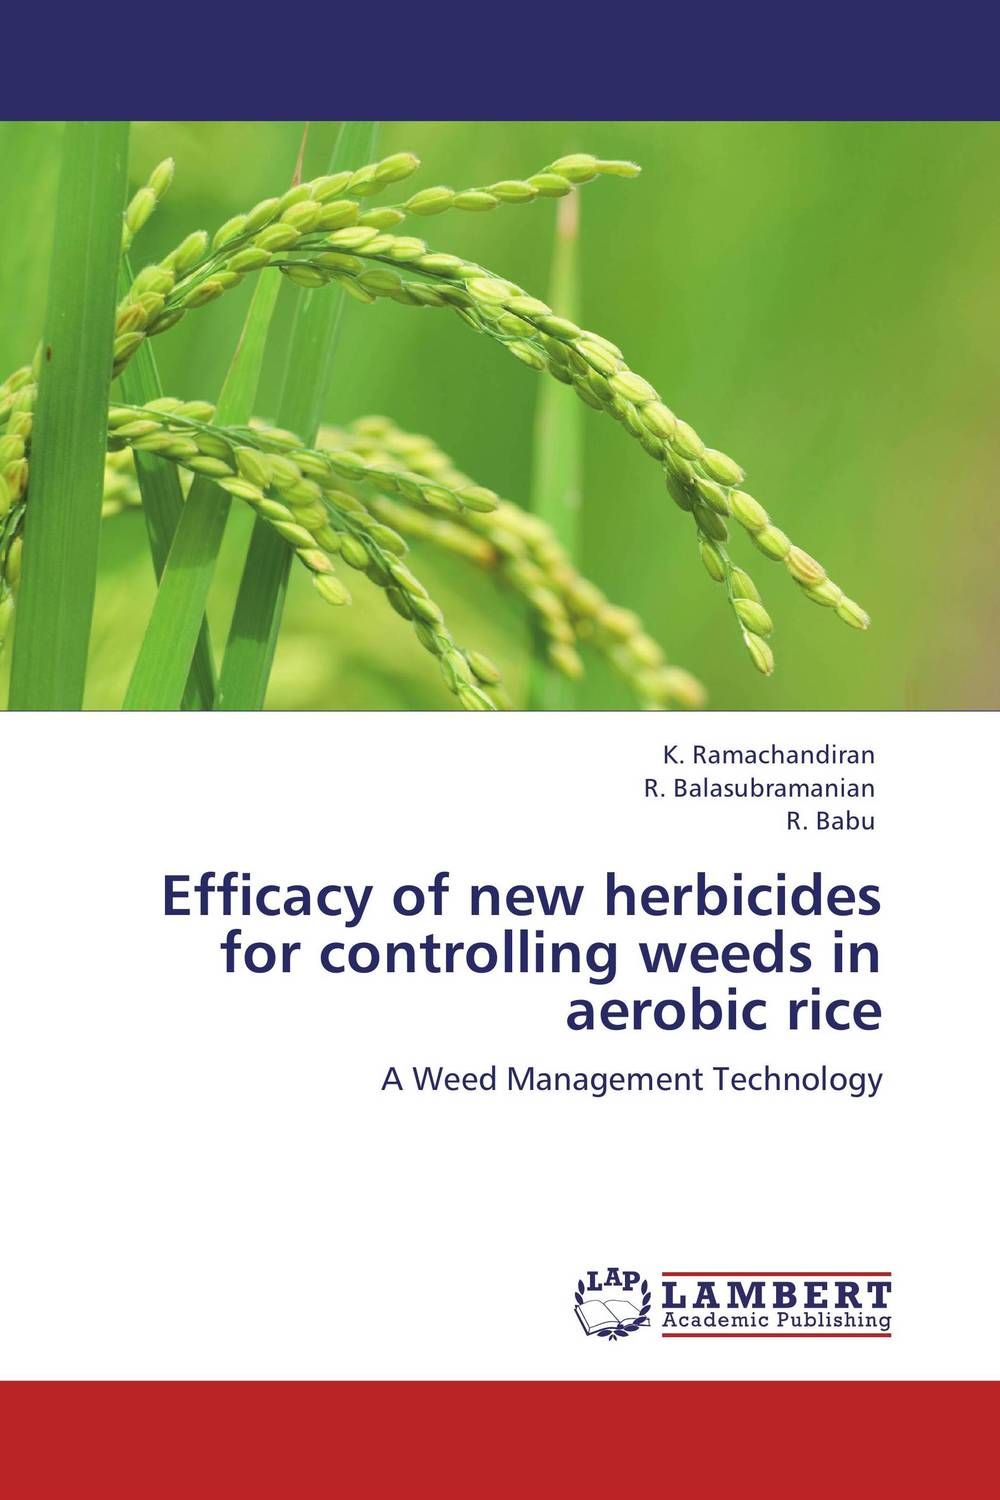 Efficacy of new herbicides for controlling weeds in aerobic rice stephen denning the leader s guide to radical management reinventing the workplace for the 21st century